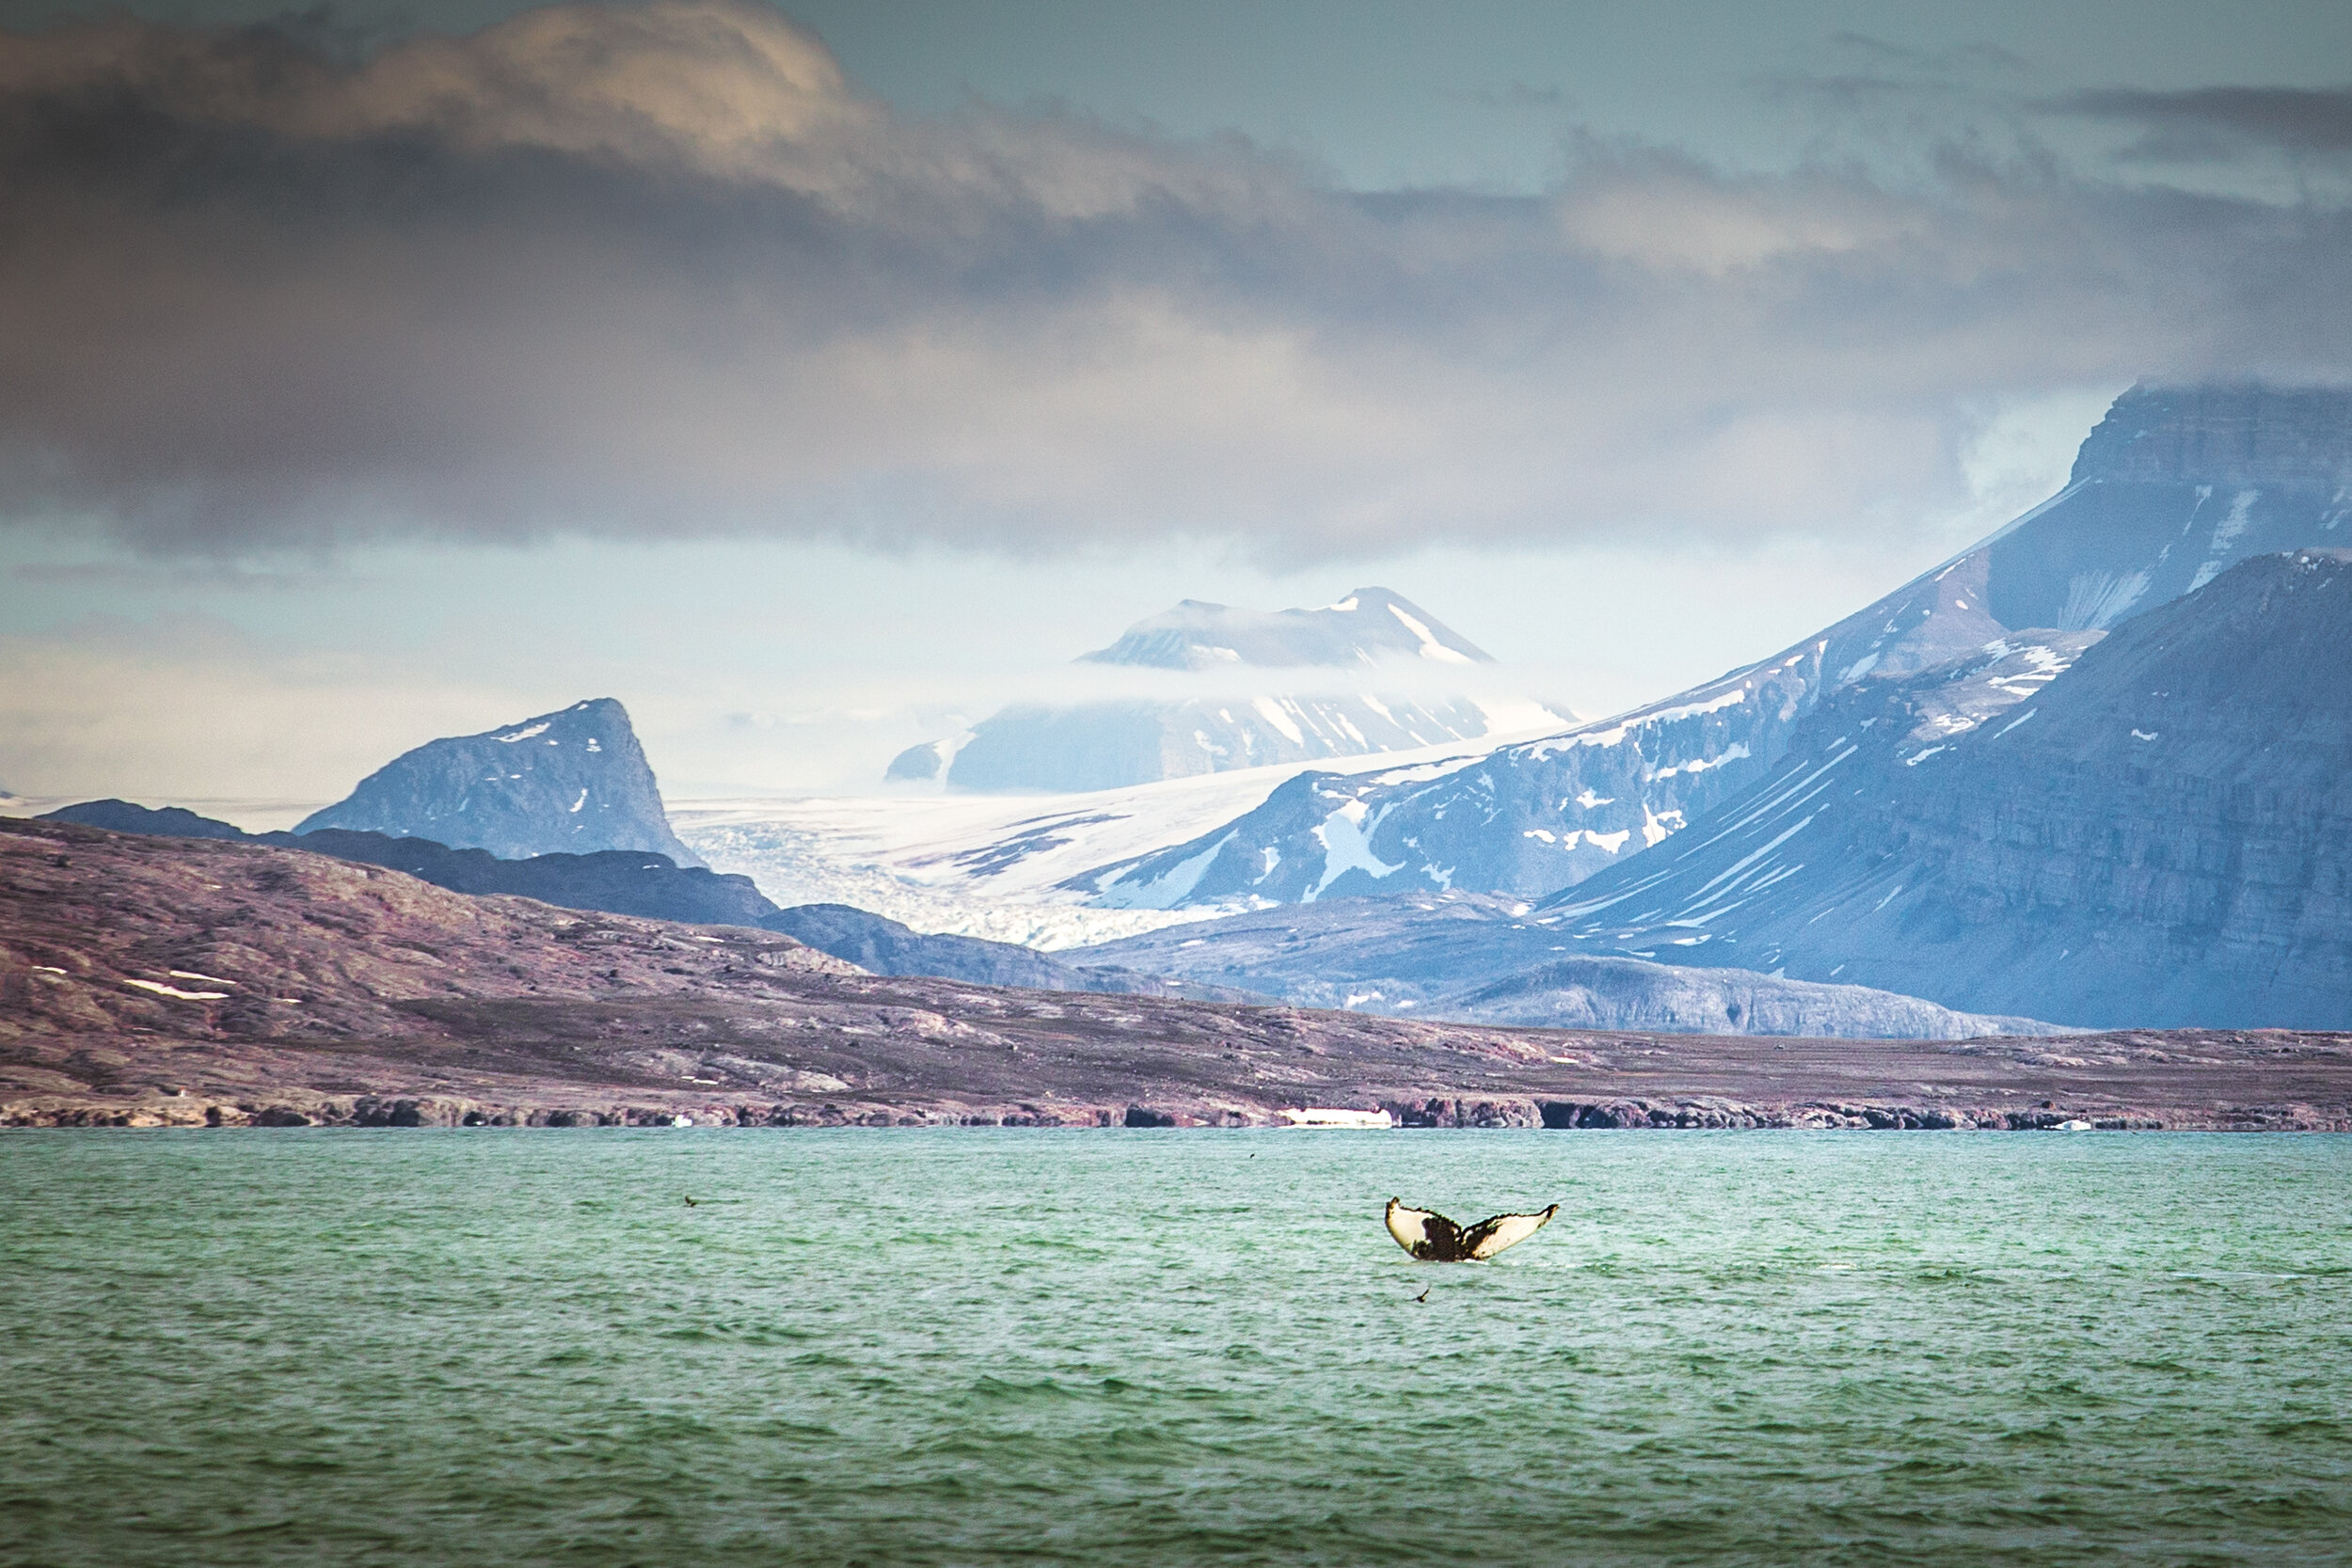 Humpback whale in Kongsfjord, Svalbard